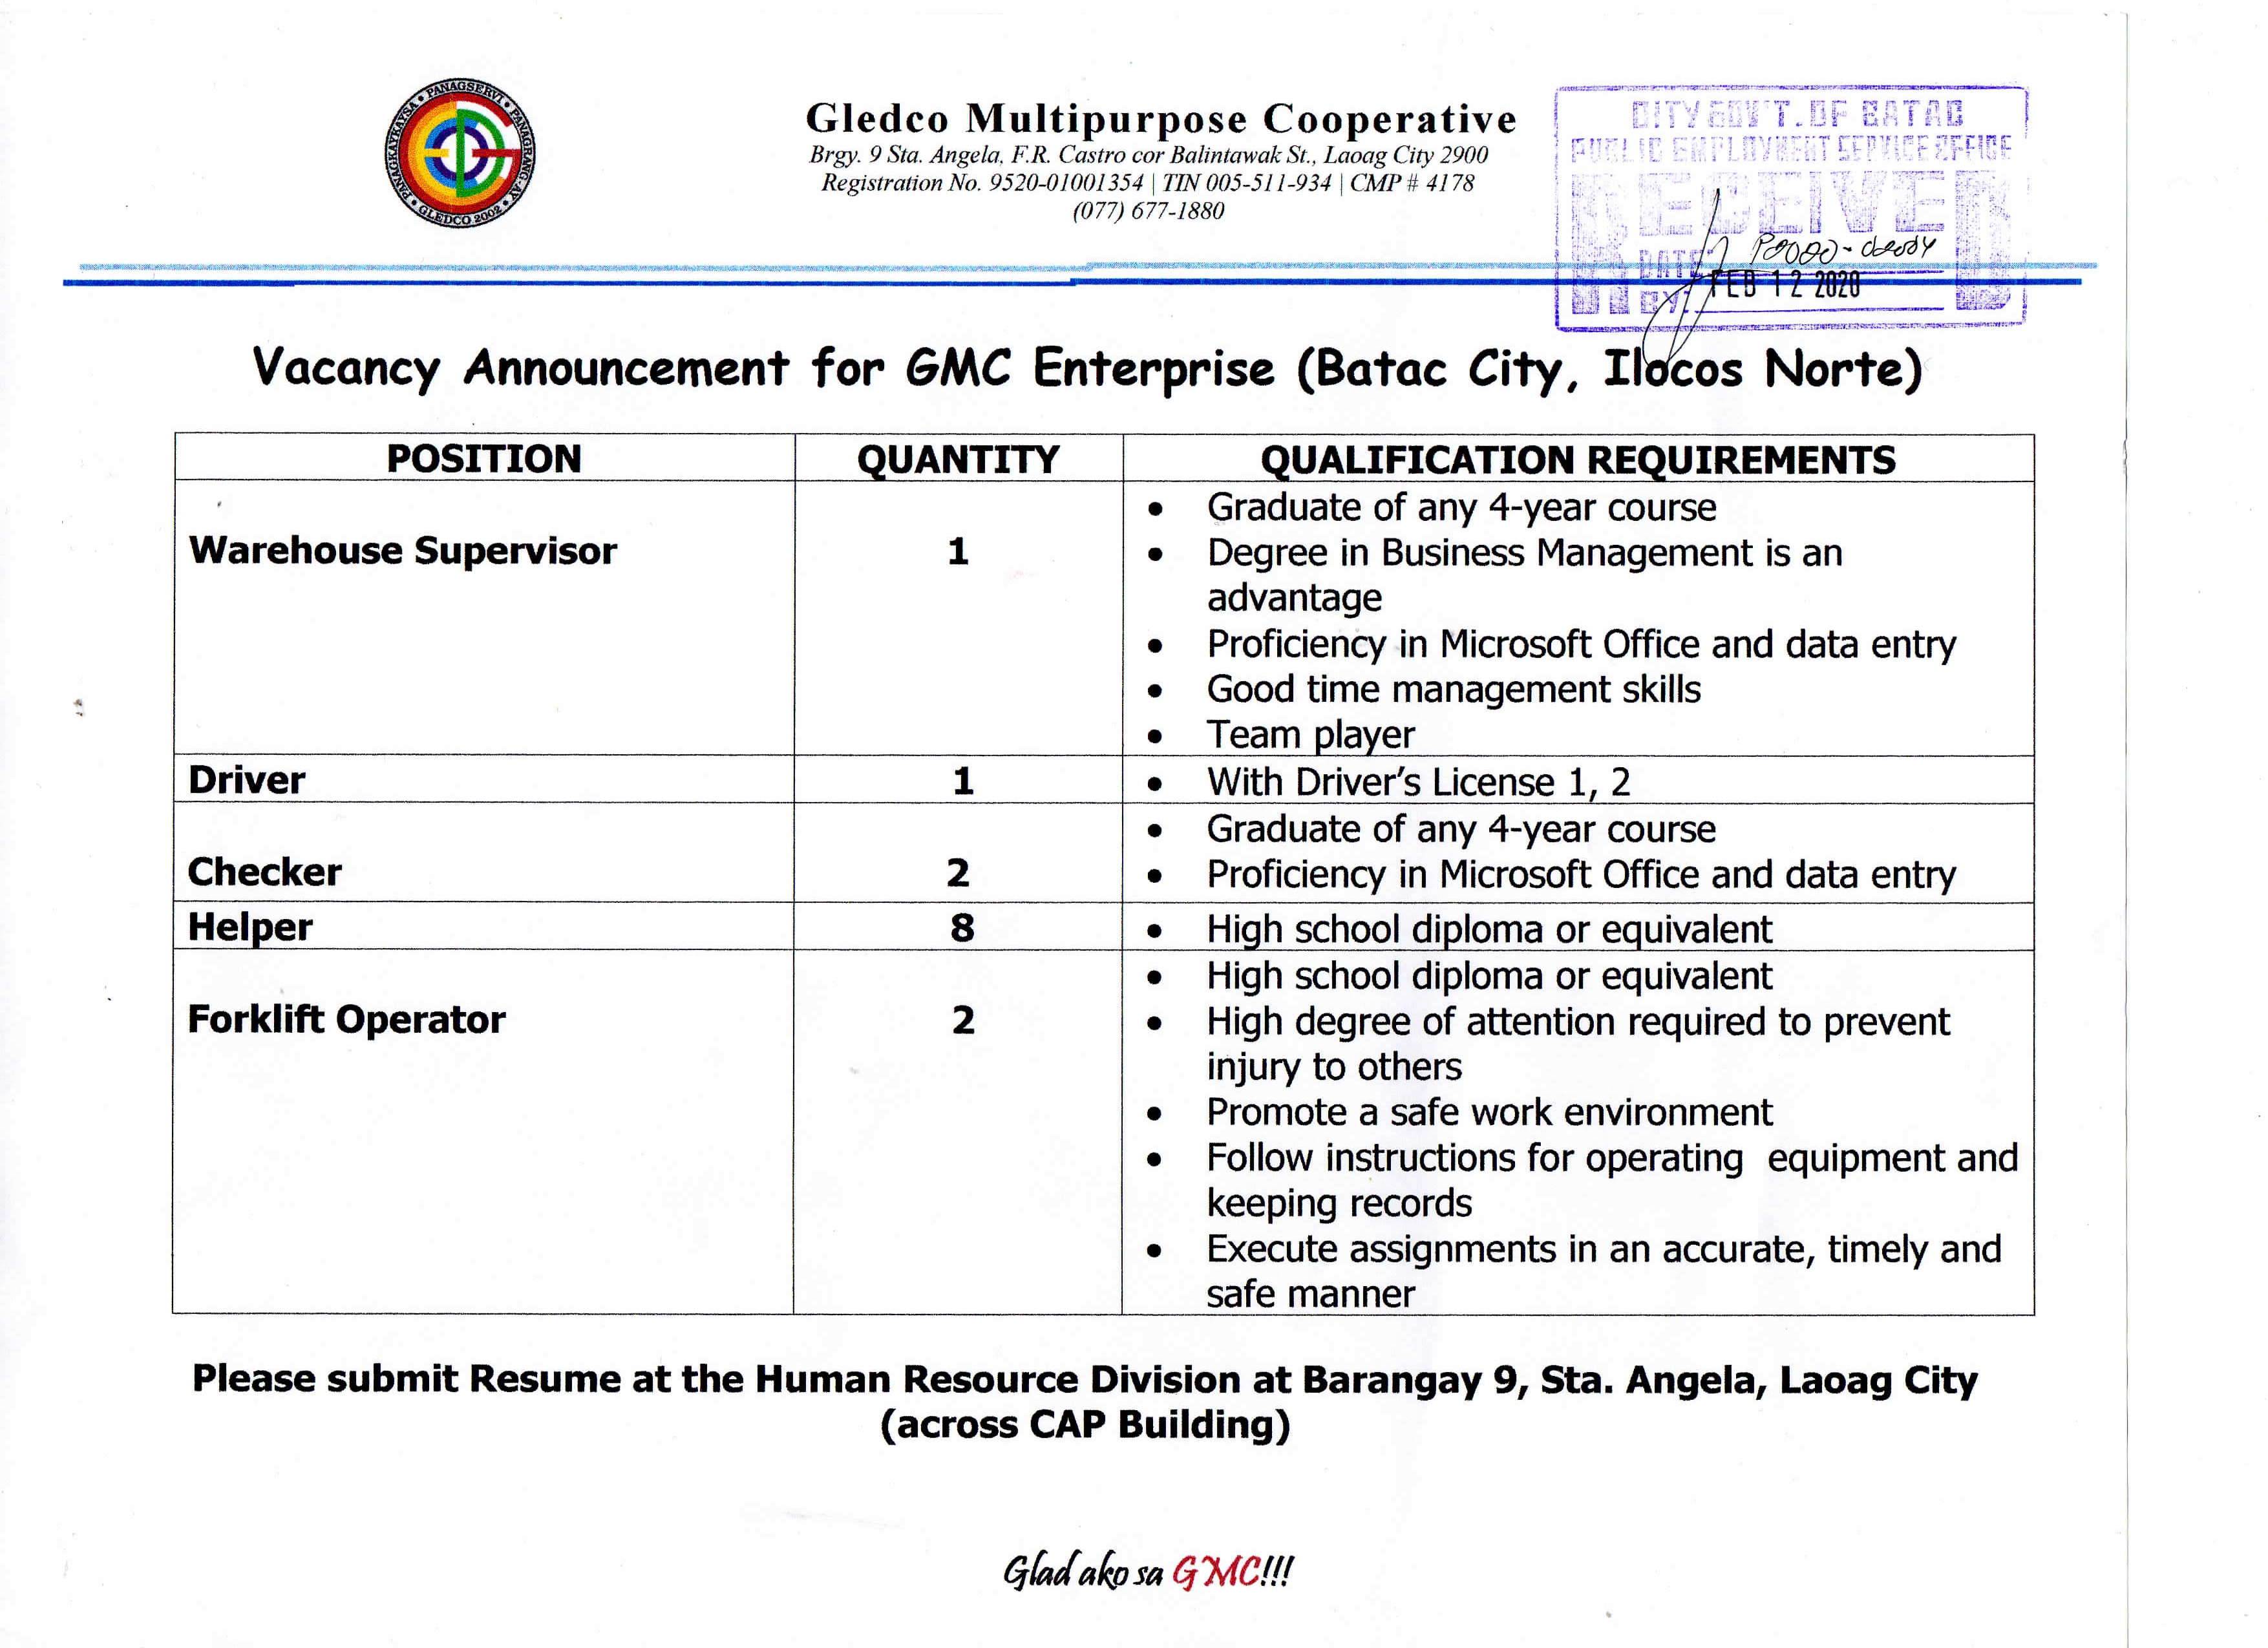 Vacancy Announcement for GMC Enterprise